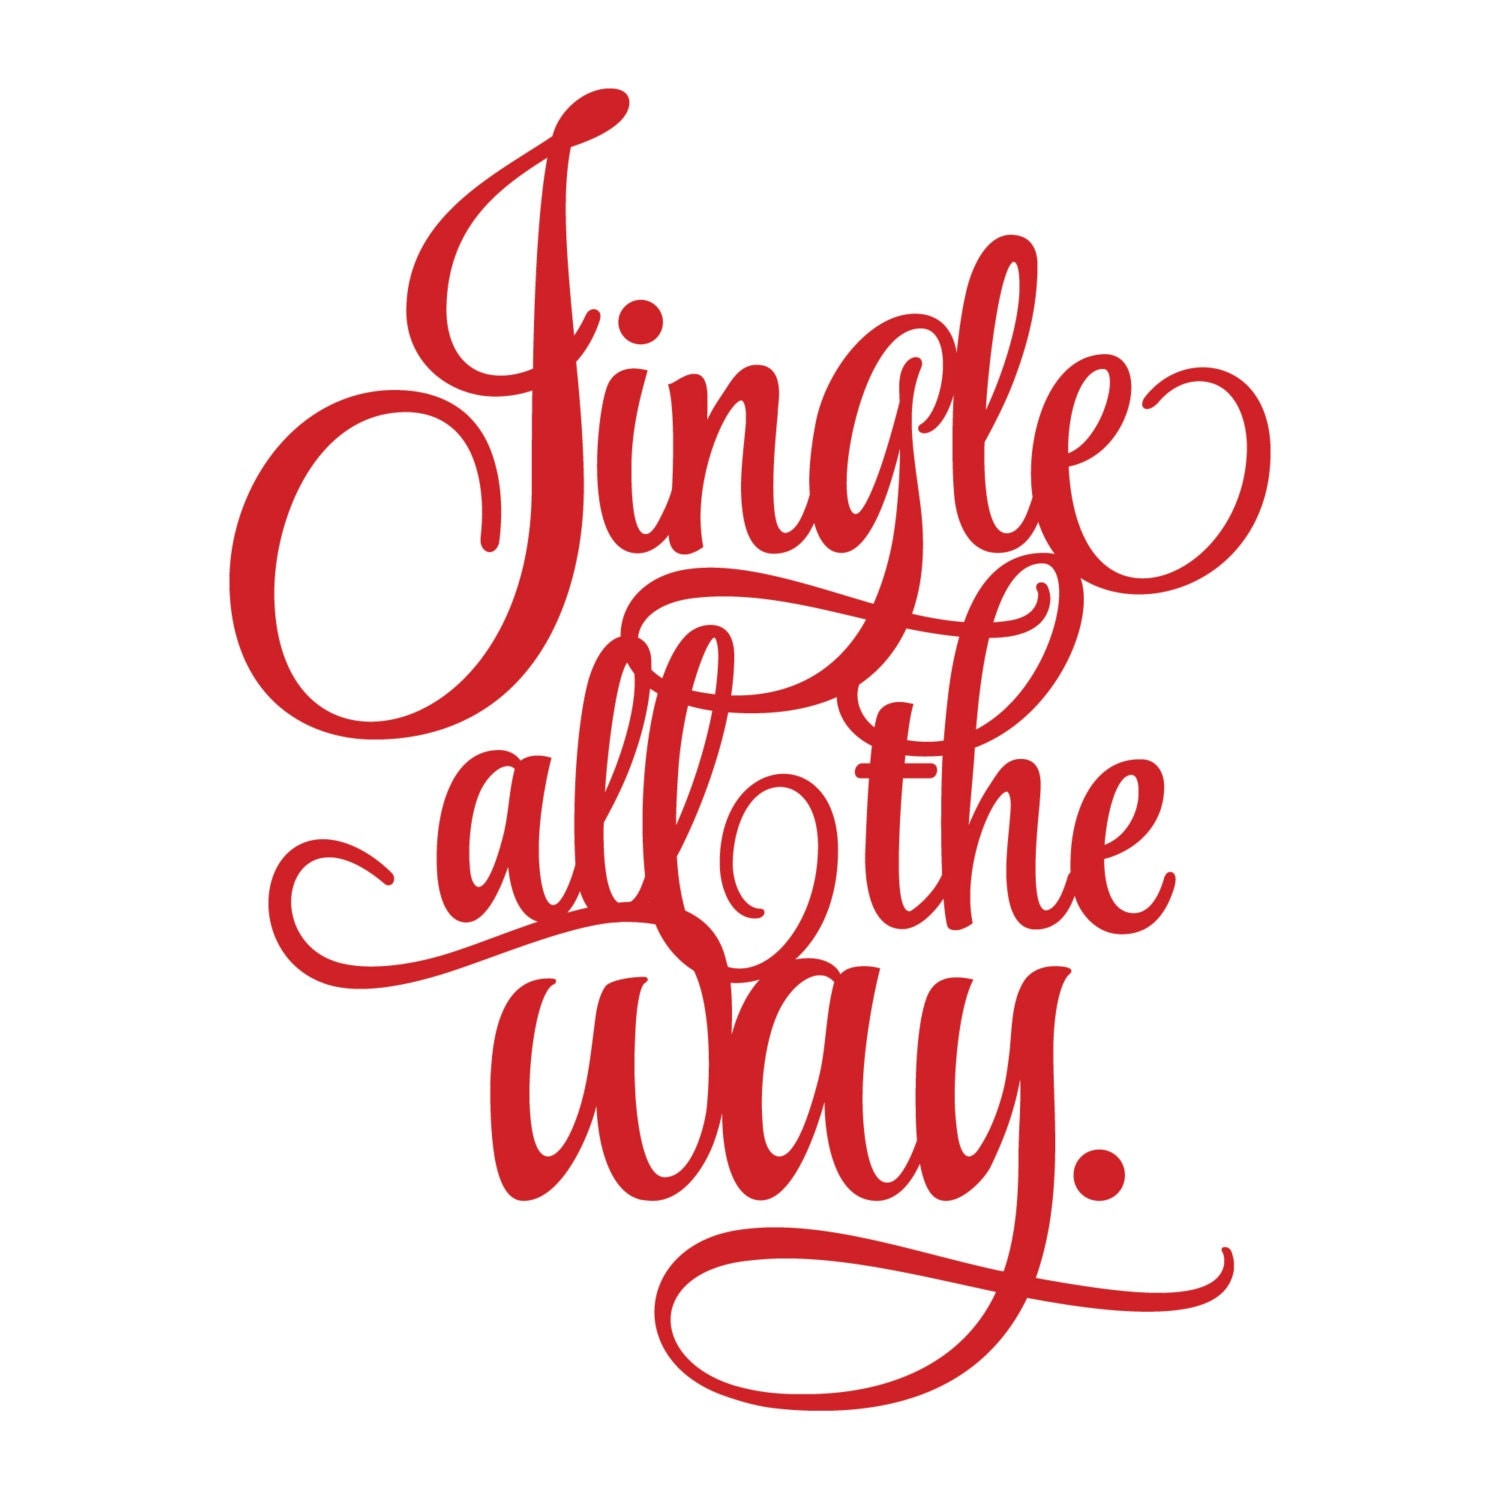 jingle all the way holiday vinyl sticker by amberrockstar Christmas Ornament Clip Art Christmas Present Outline Clip Art